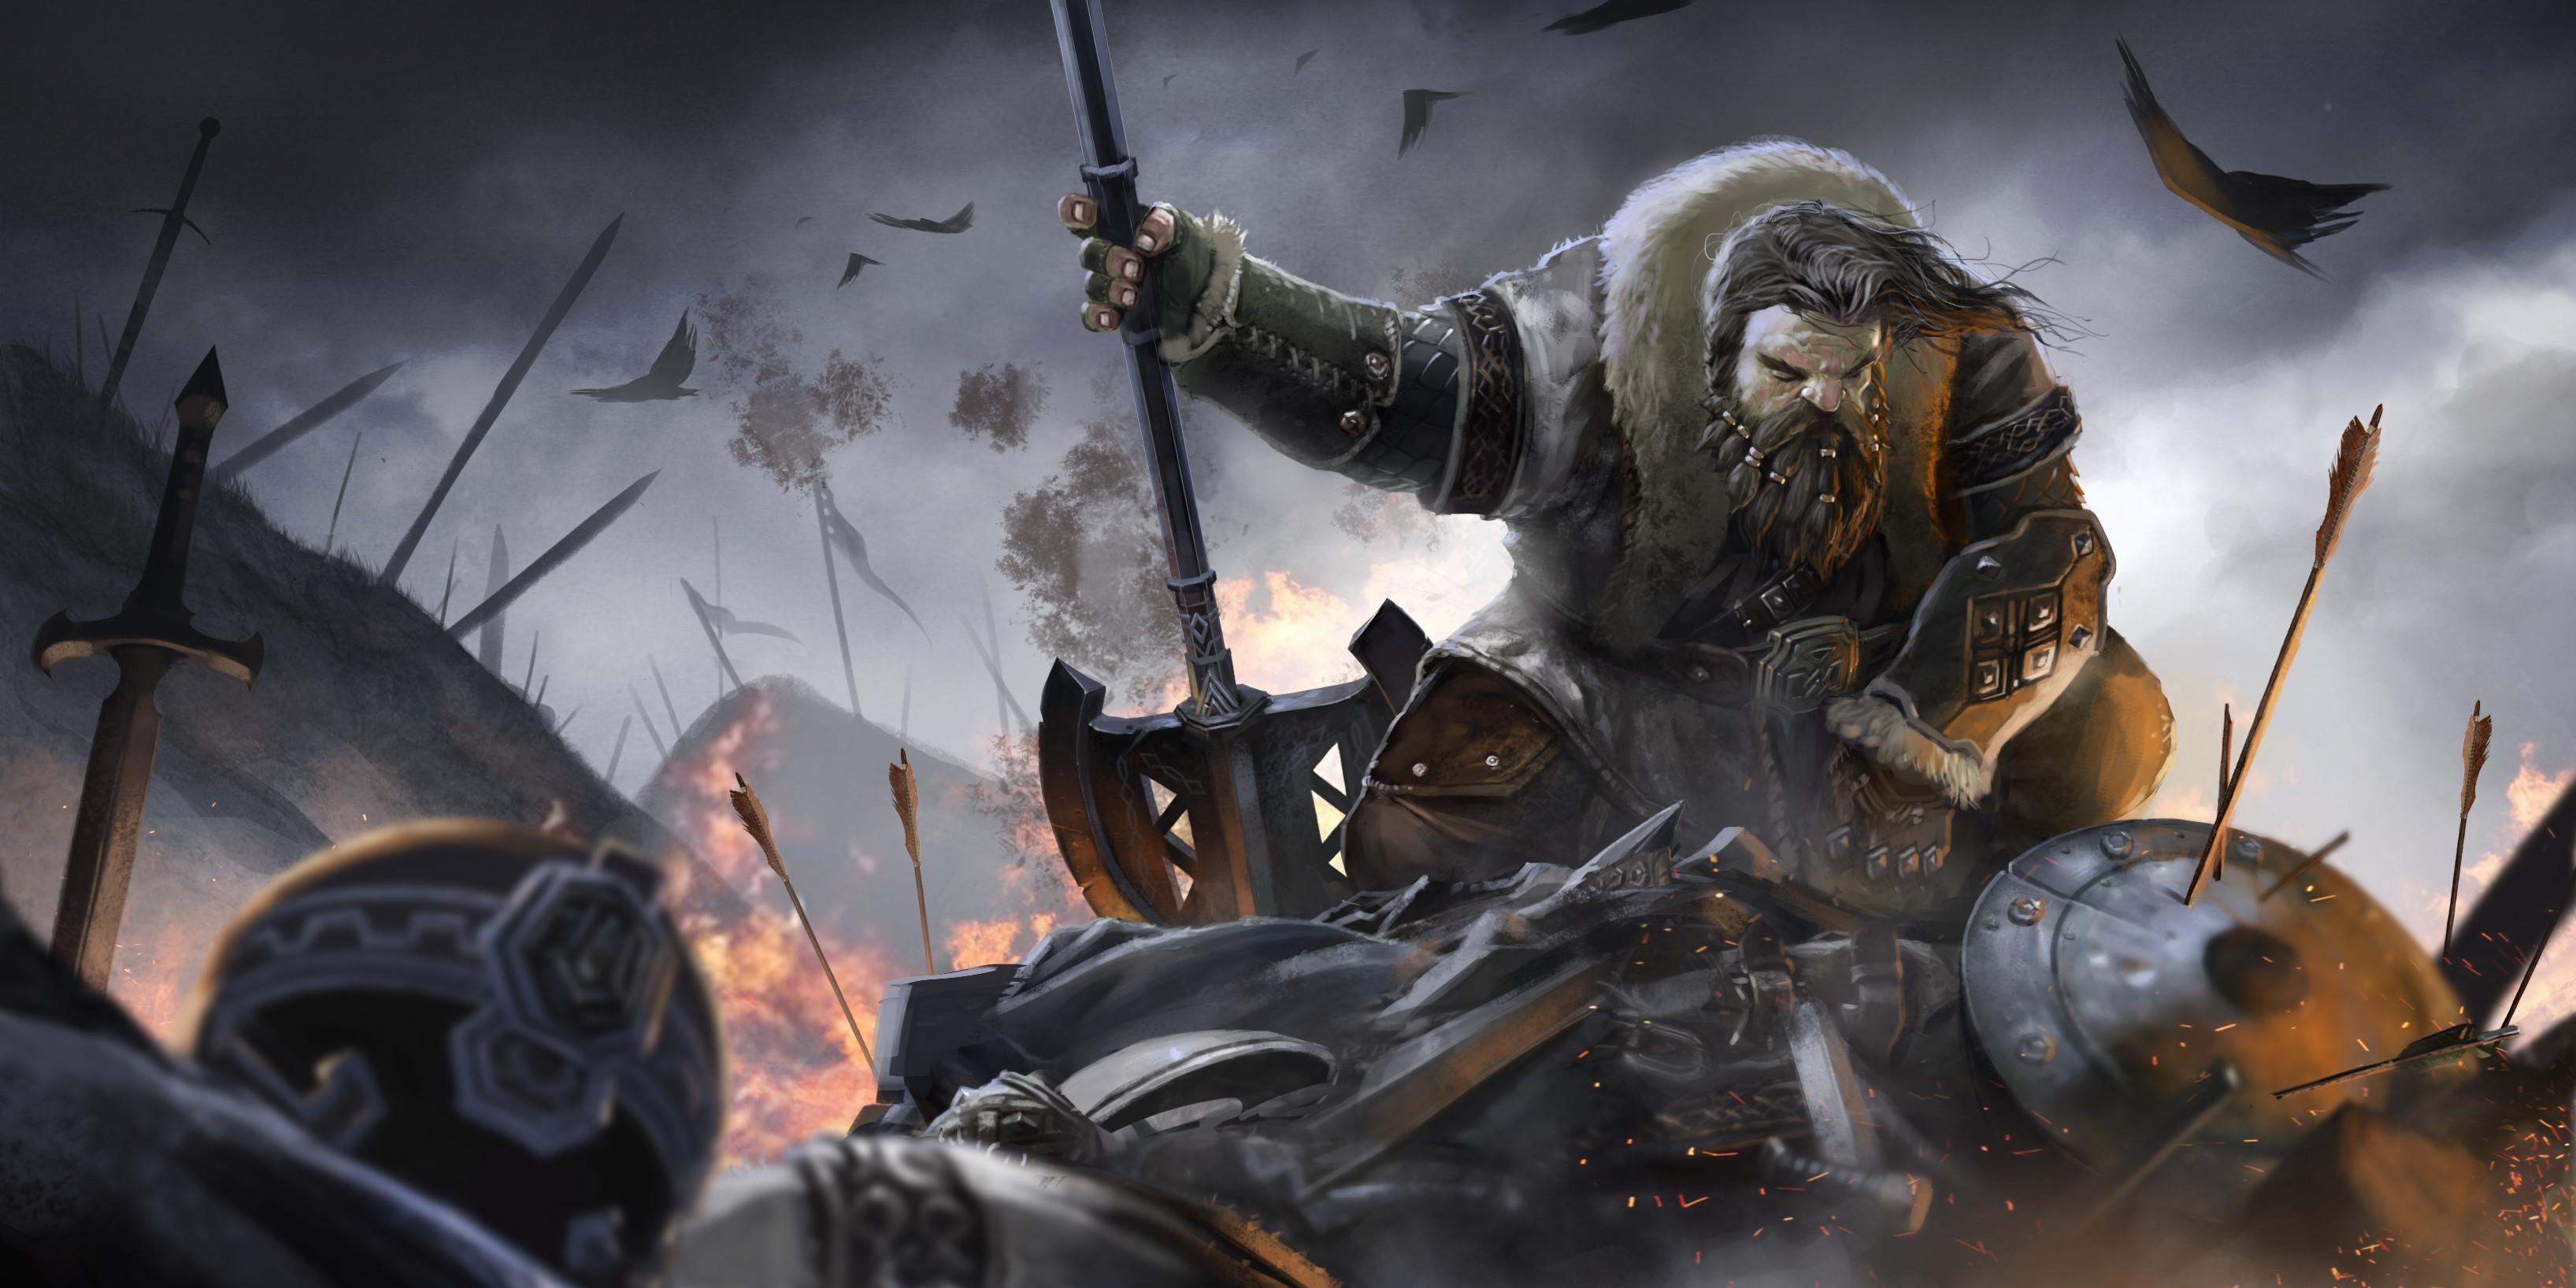 The Hobbit Armies Of Third Age Wallpaper